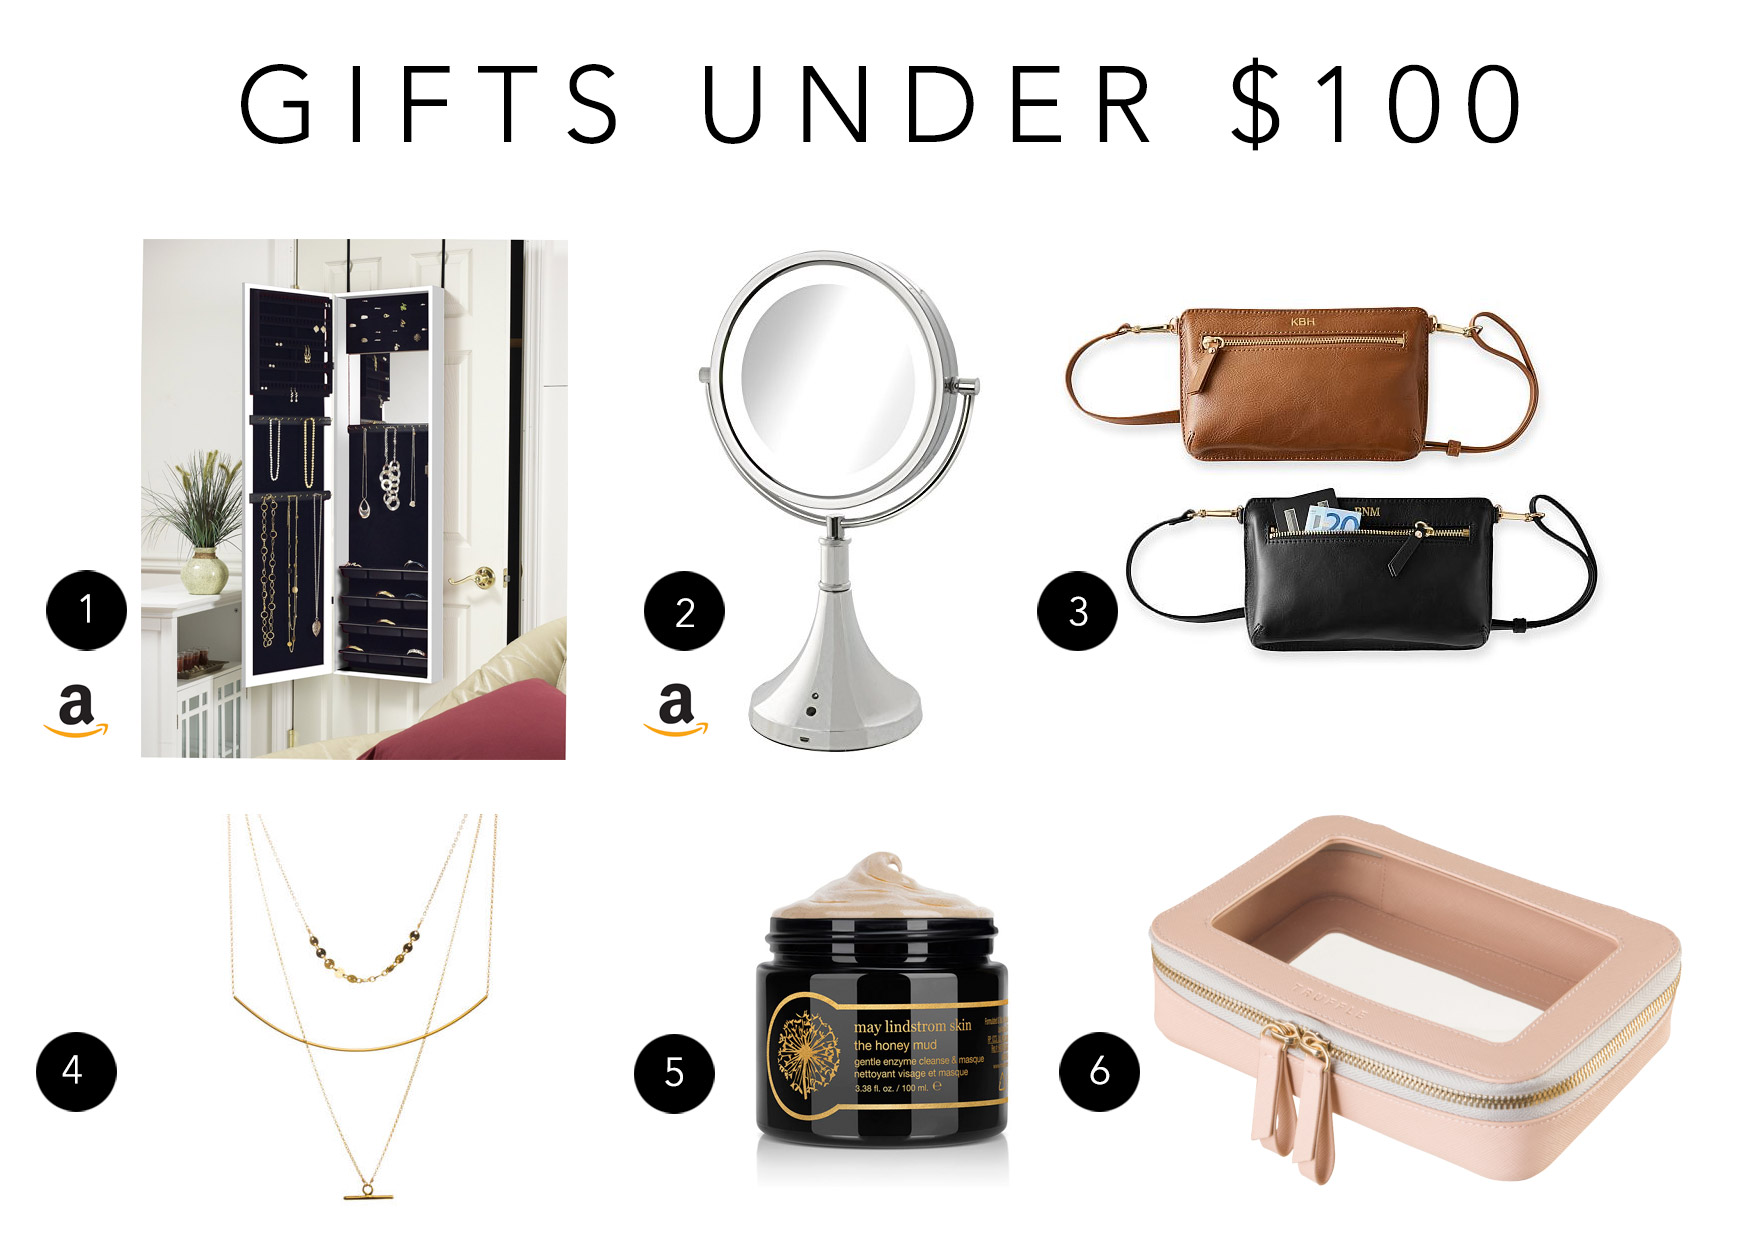 Christmas gifts under $100 gift guide ideas